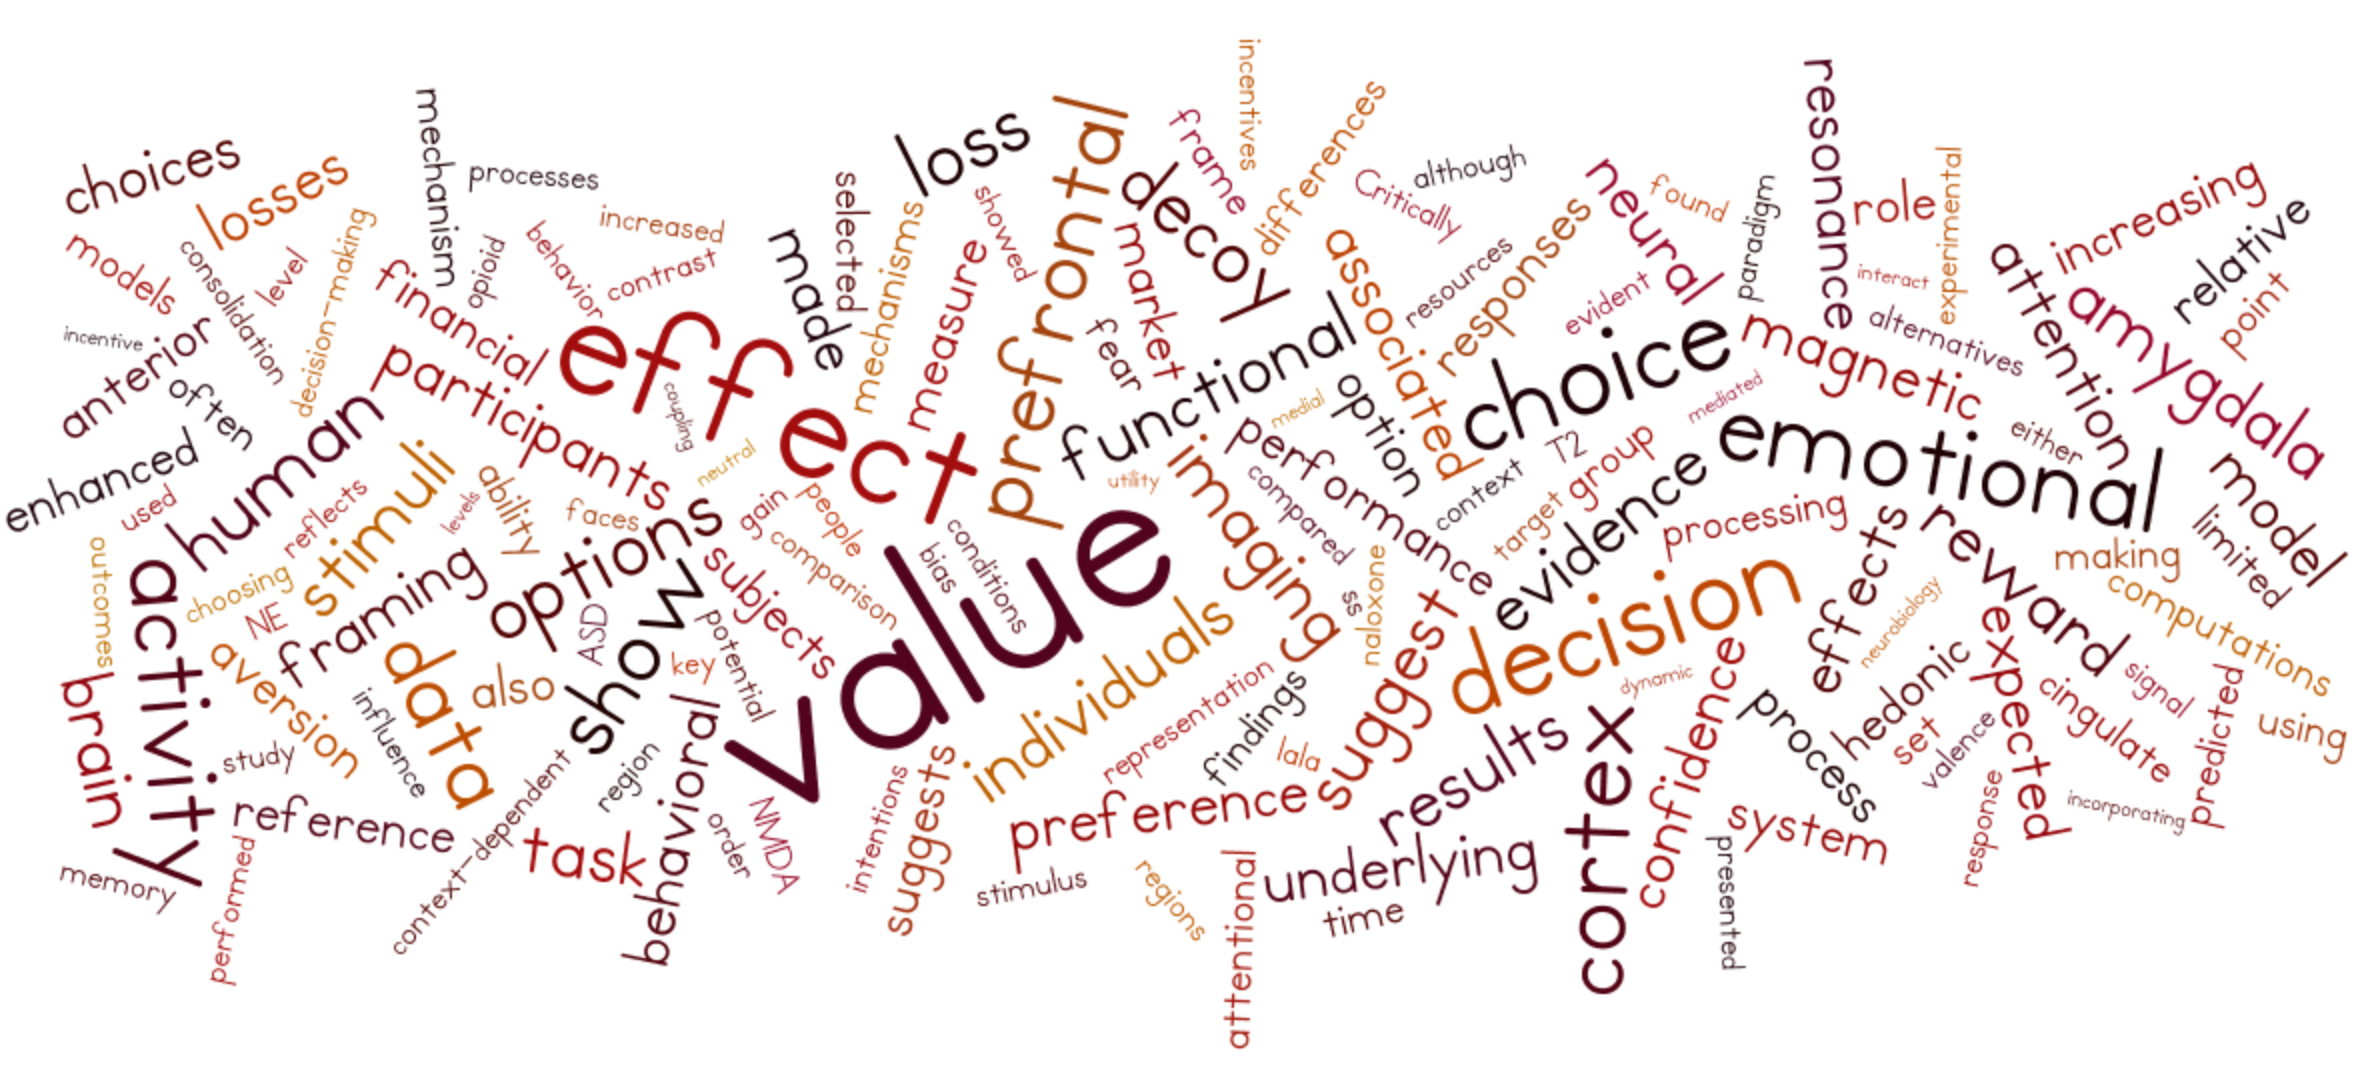 Wordle generated by the abstracts of our papers